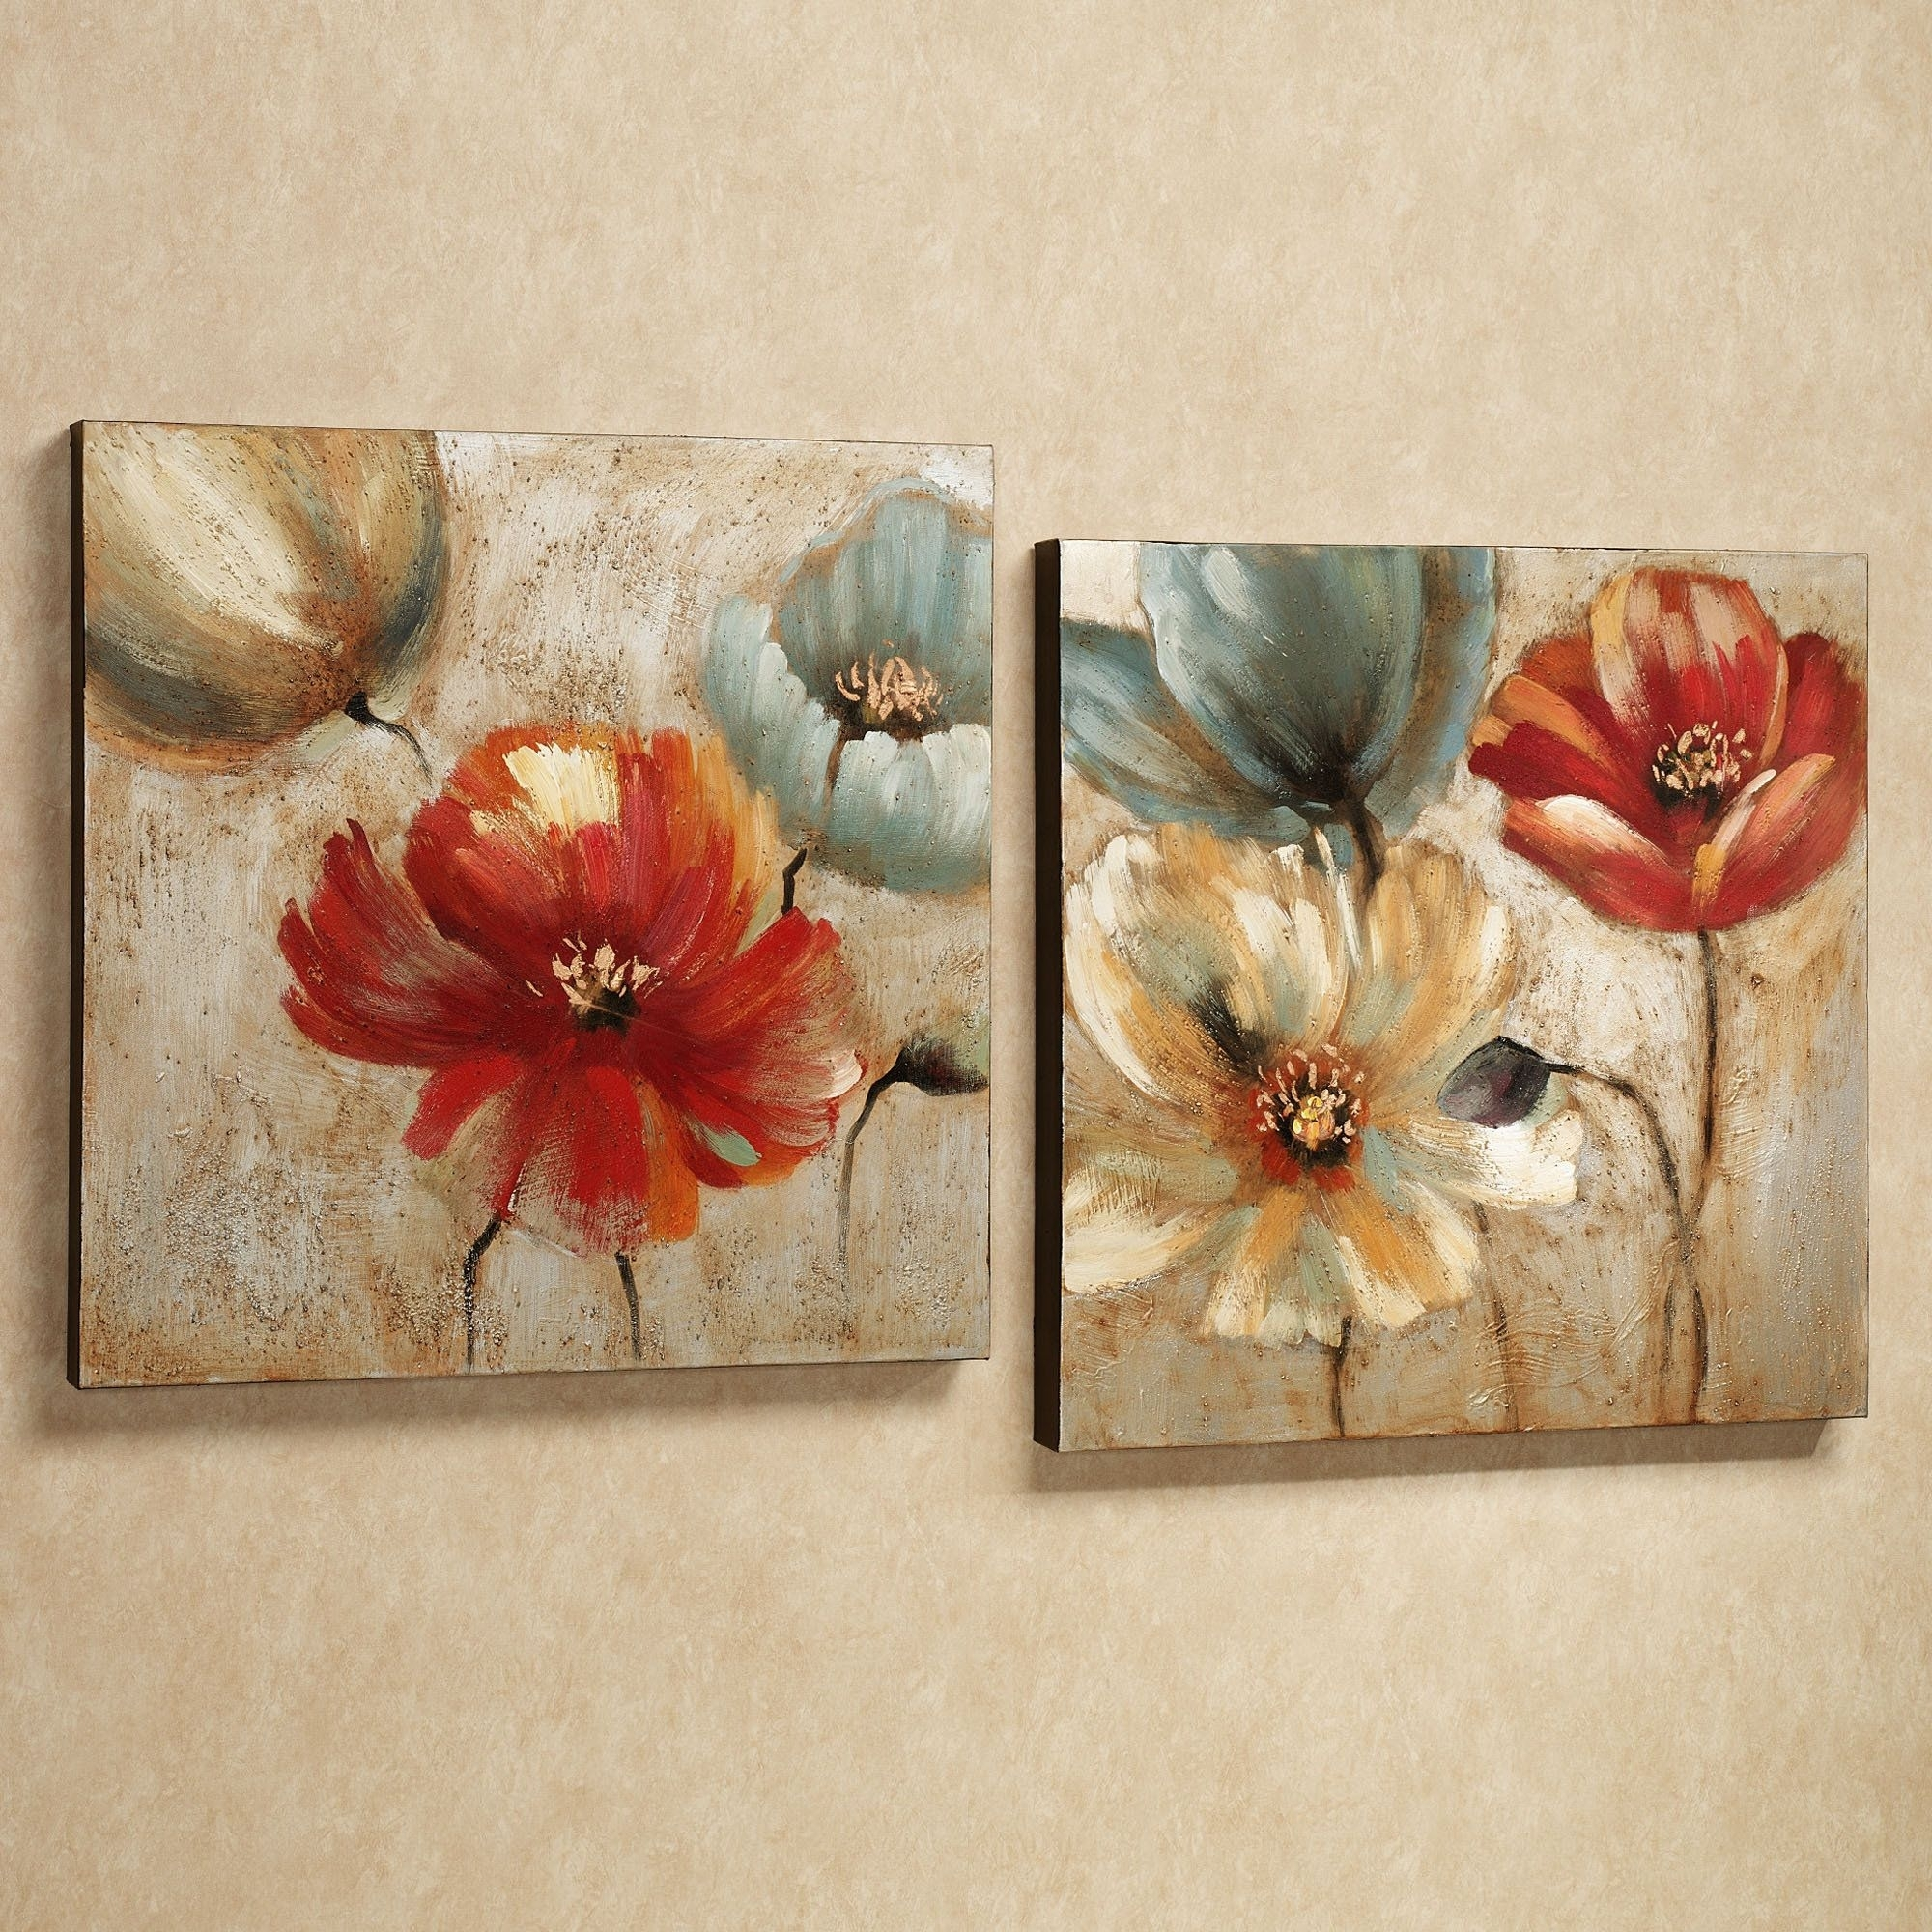 Joyful Garden Floral Canvas Wall Art Set | Poppy – Wall Art For 2018 Canvas Wall Art Sets (View 6 of 15)